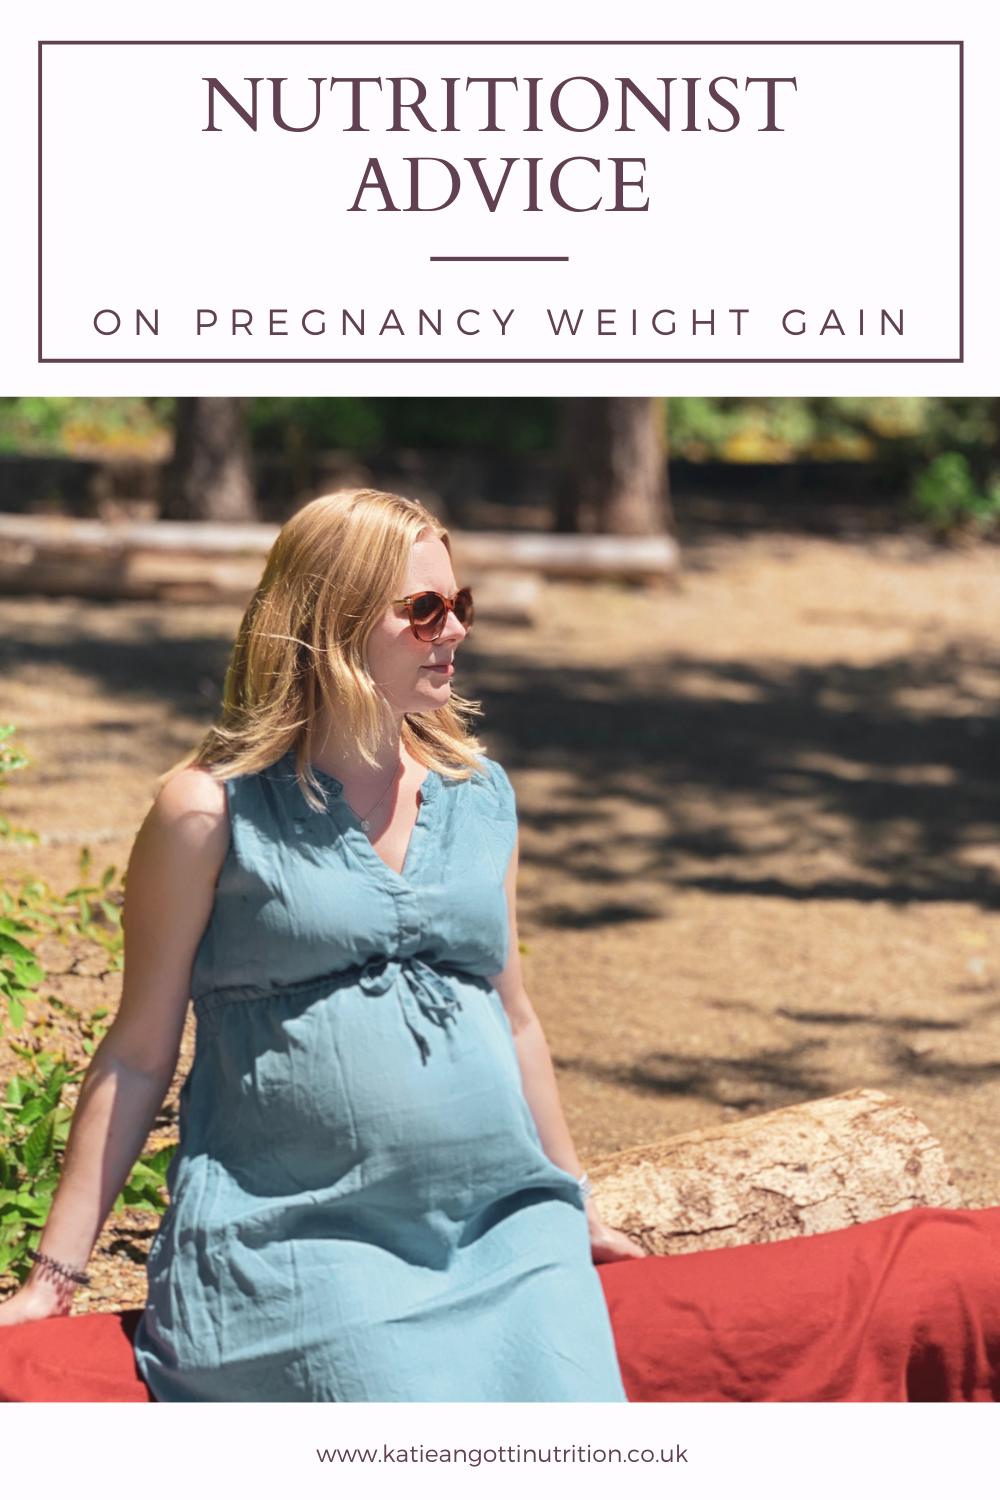 Nutrition advice from a pregnancy nutritionist on normal pregnancy weight gain